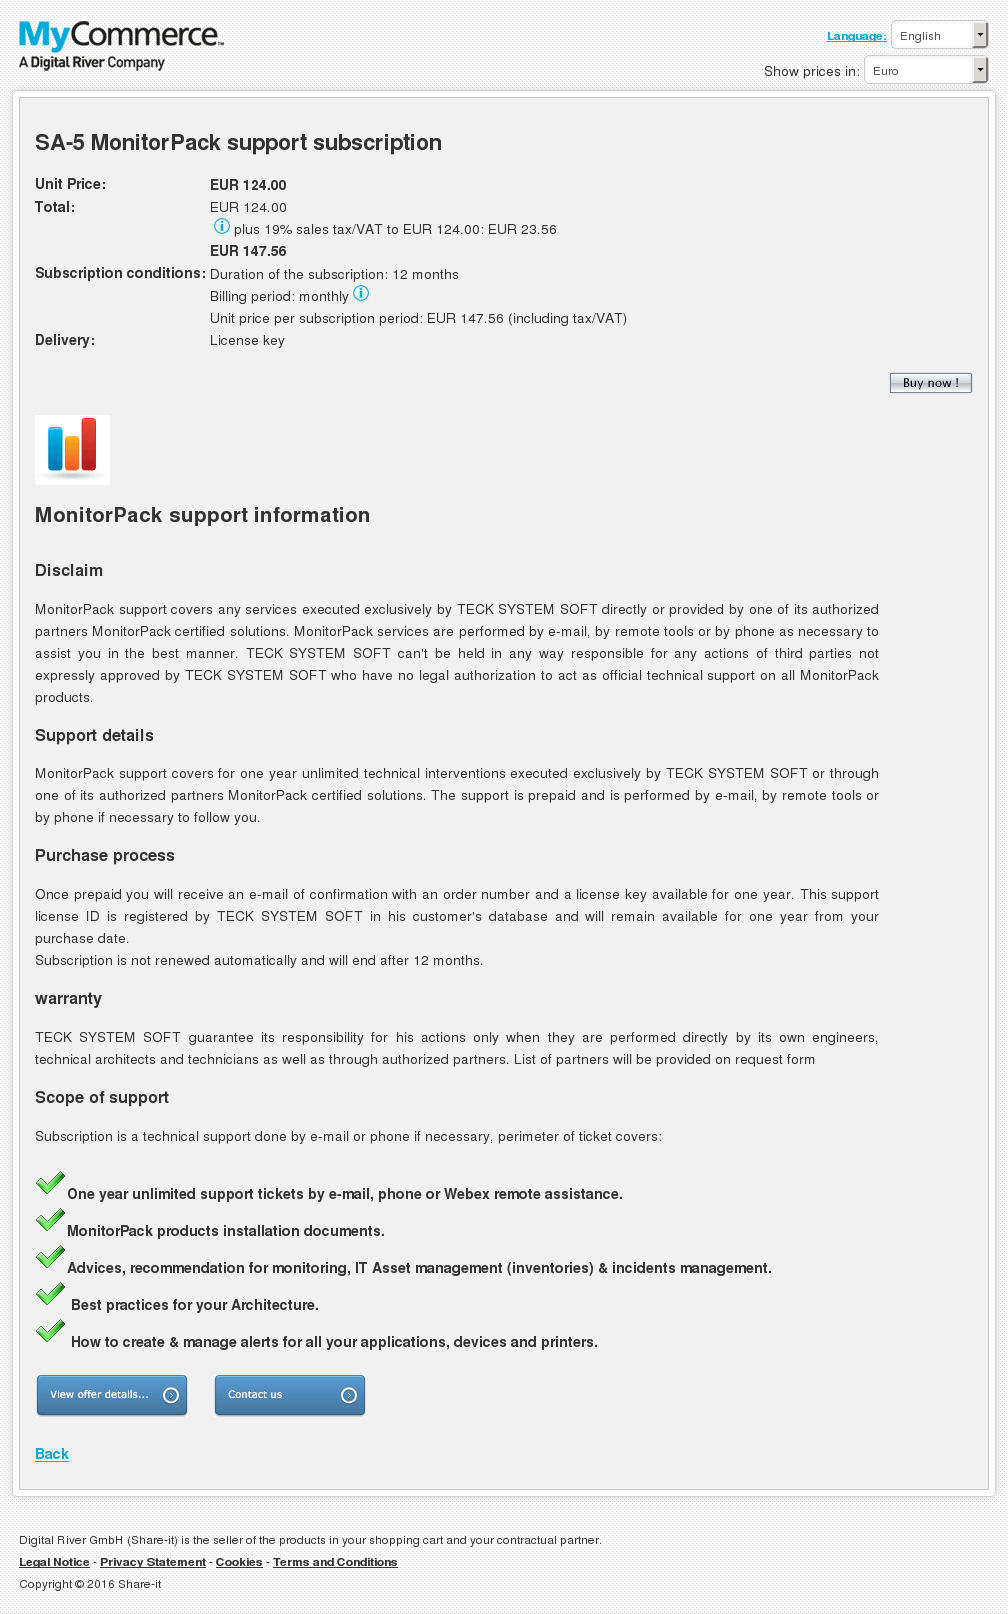 Monitorpack Support Subscription Review